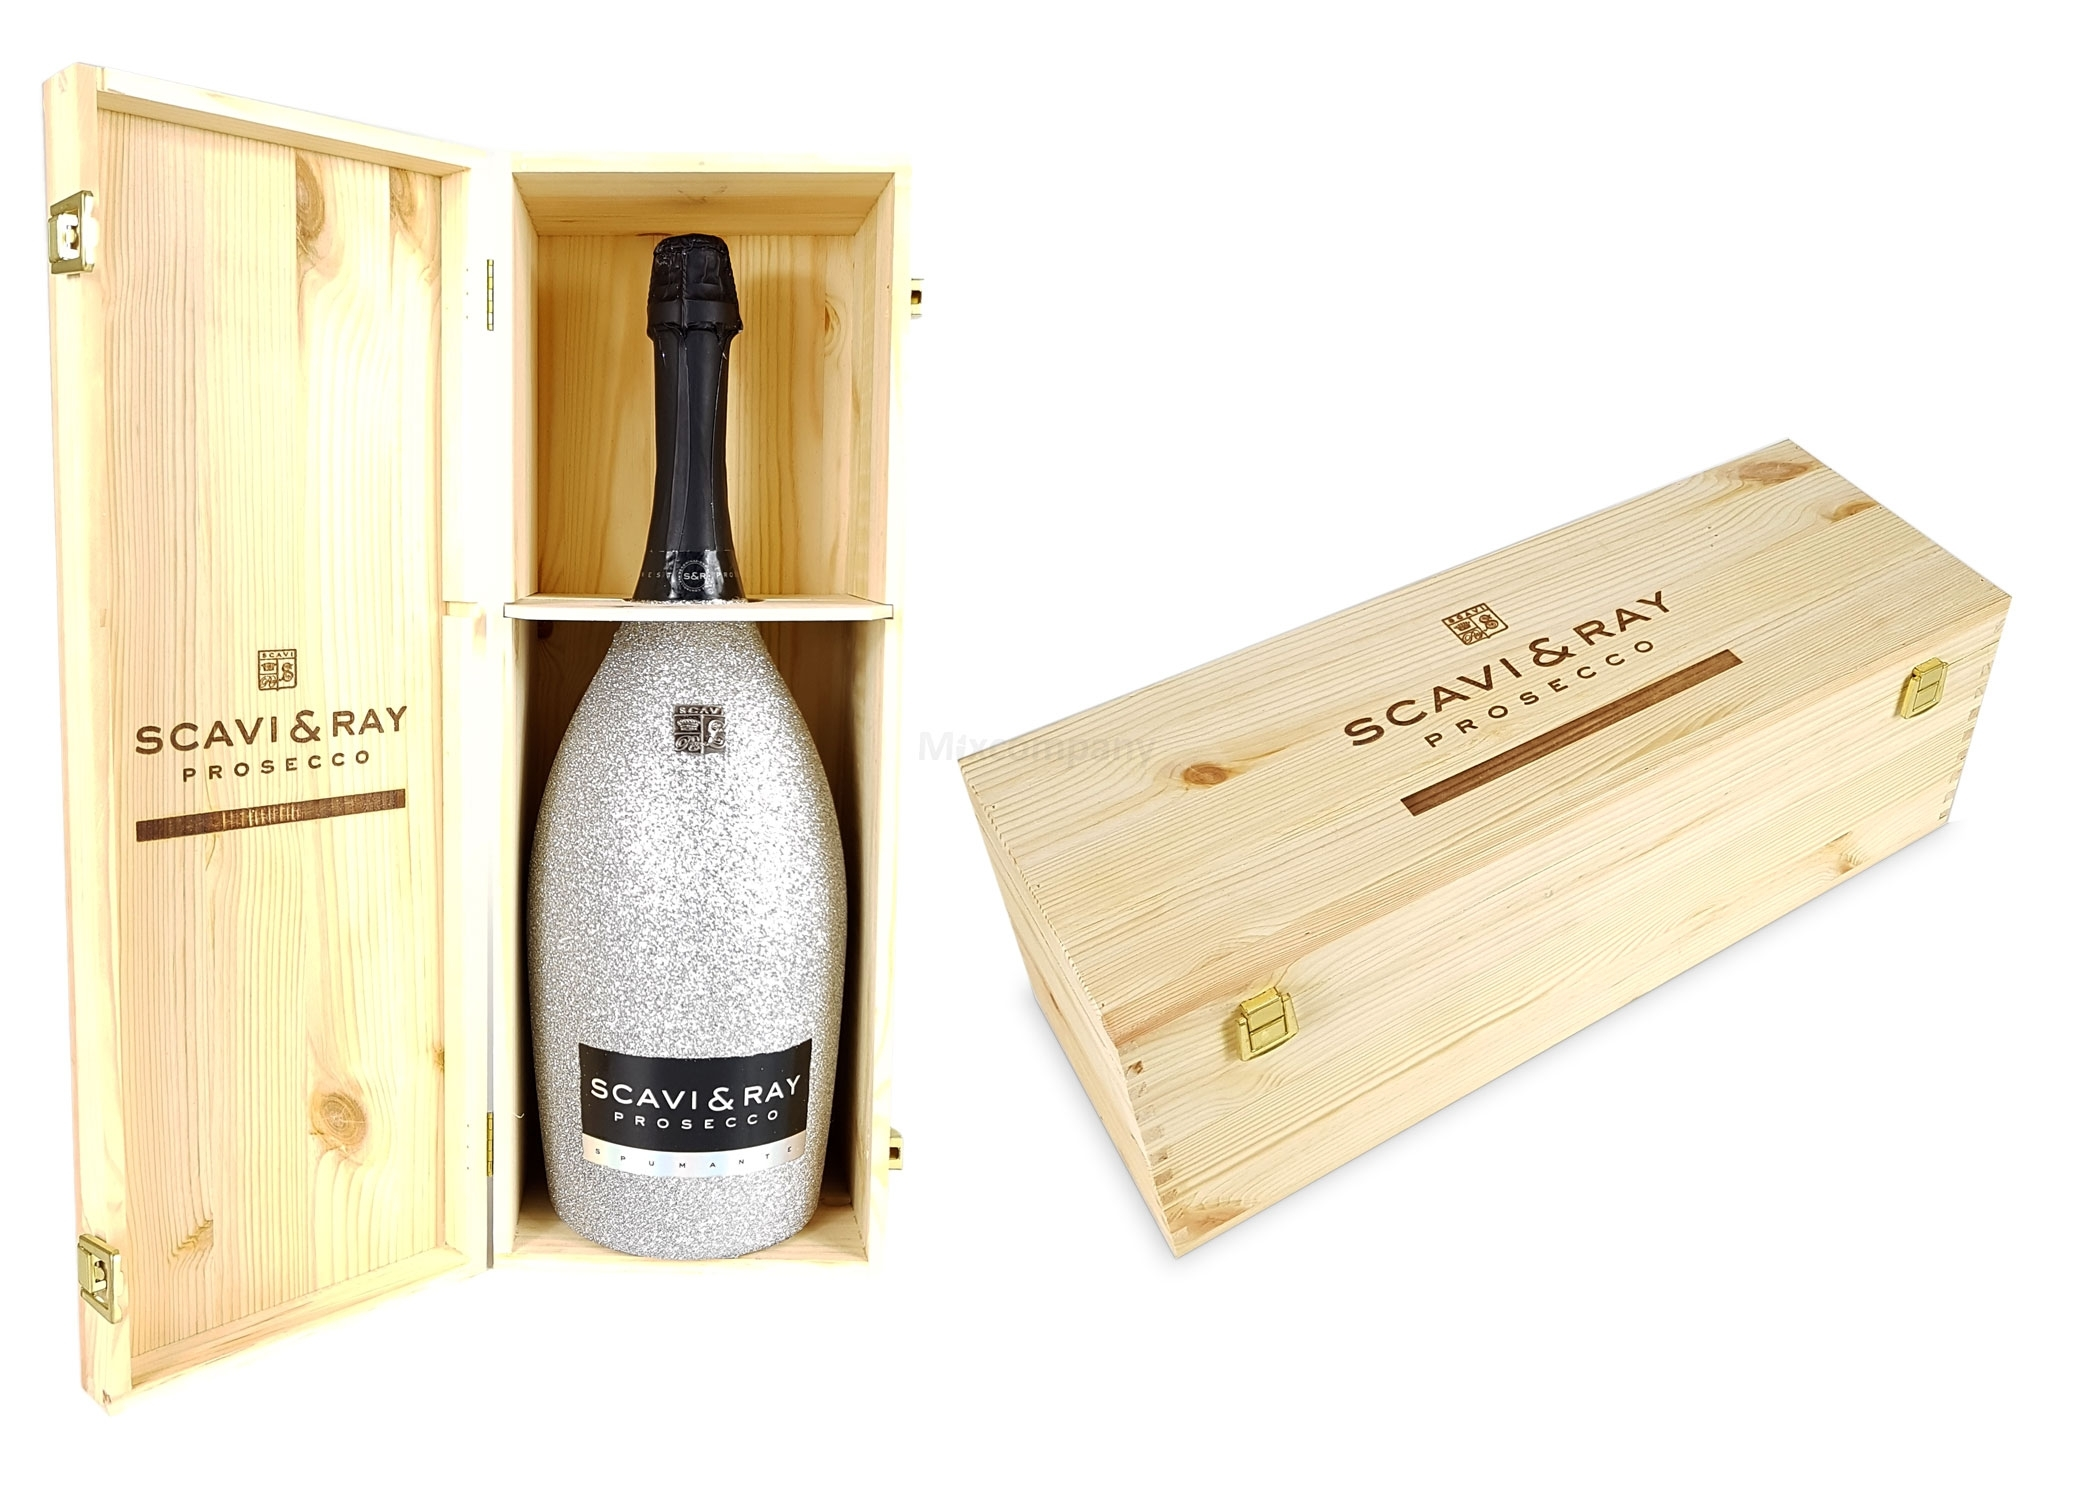 Scavi & Ray Prosecco Spumante Magnum 3l (11% Vol) Bling Bling Glitzerflasche Silber + Holzbox Holzkiste -[Enthält Sulfite]